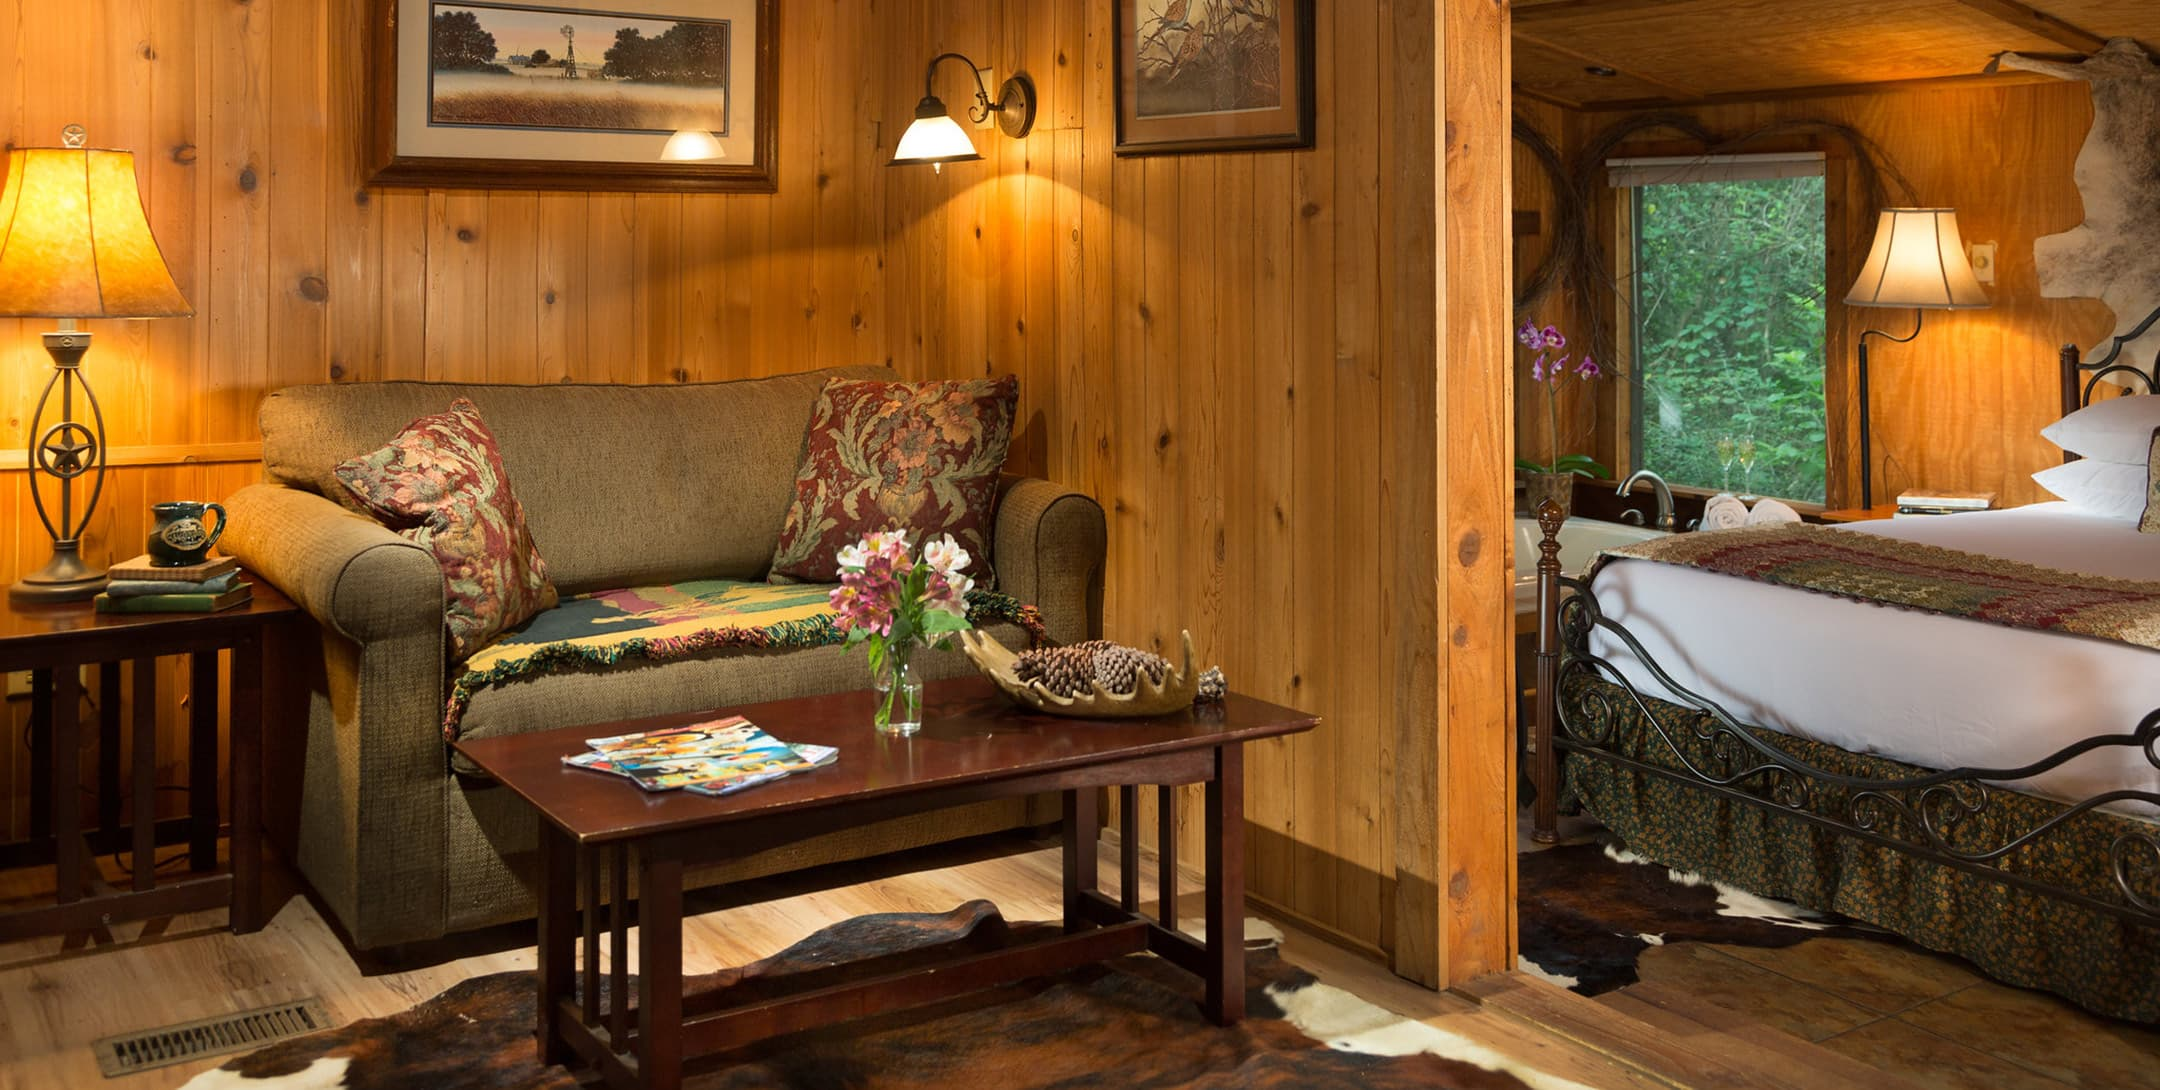 Living room in the Enchanted Cabin